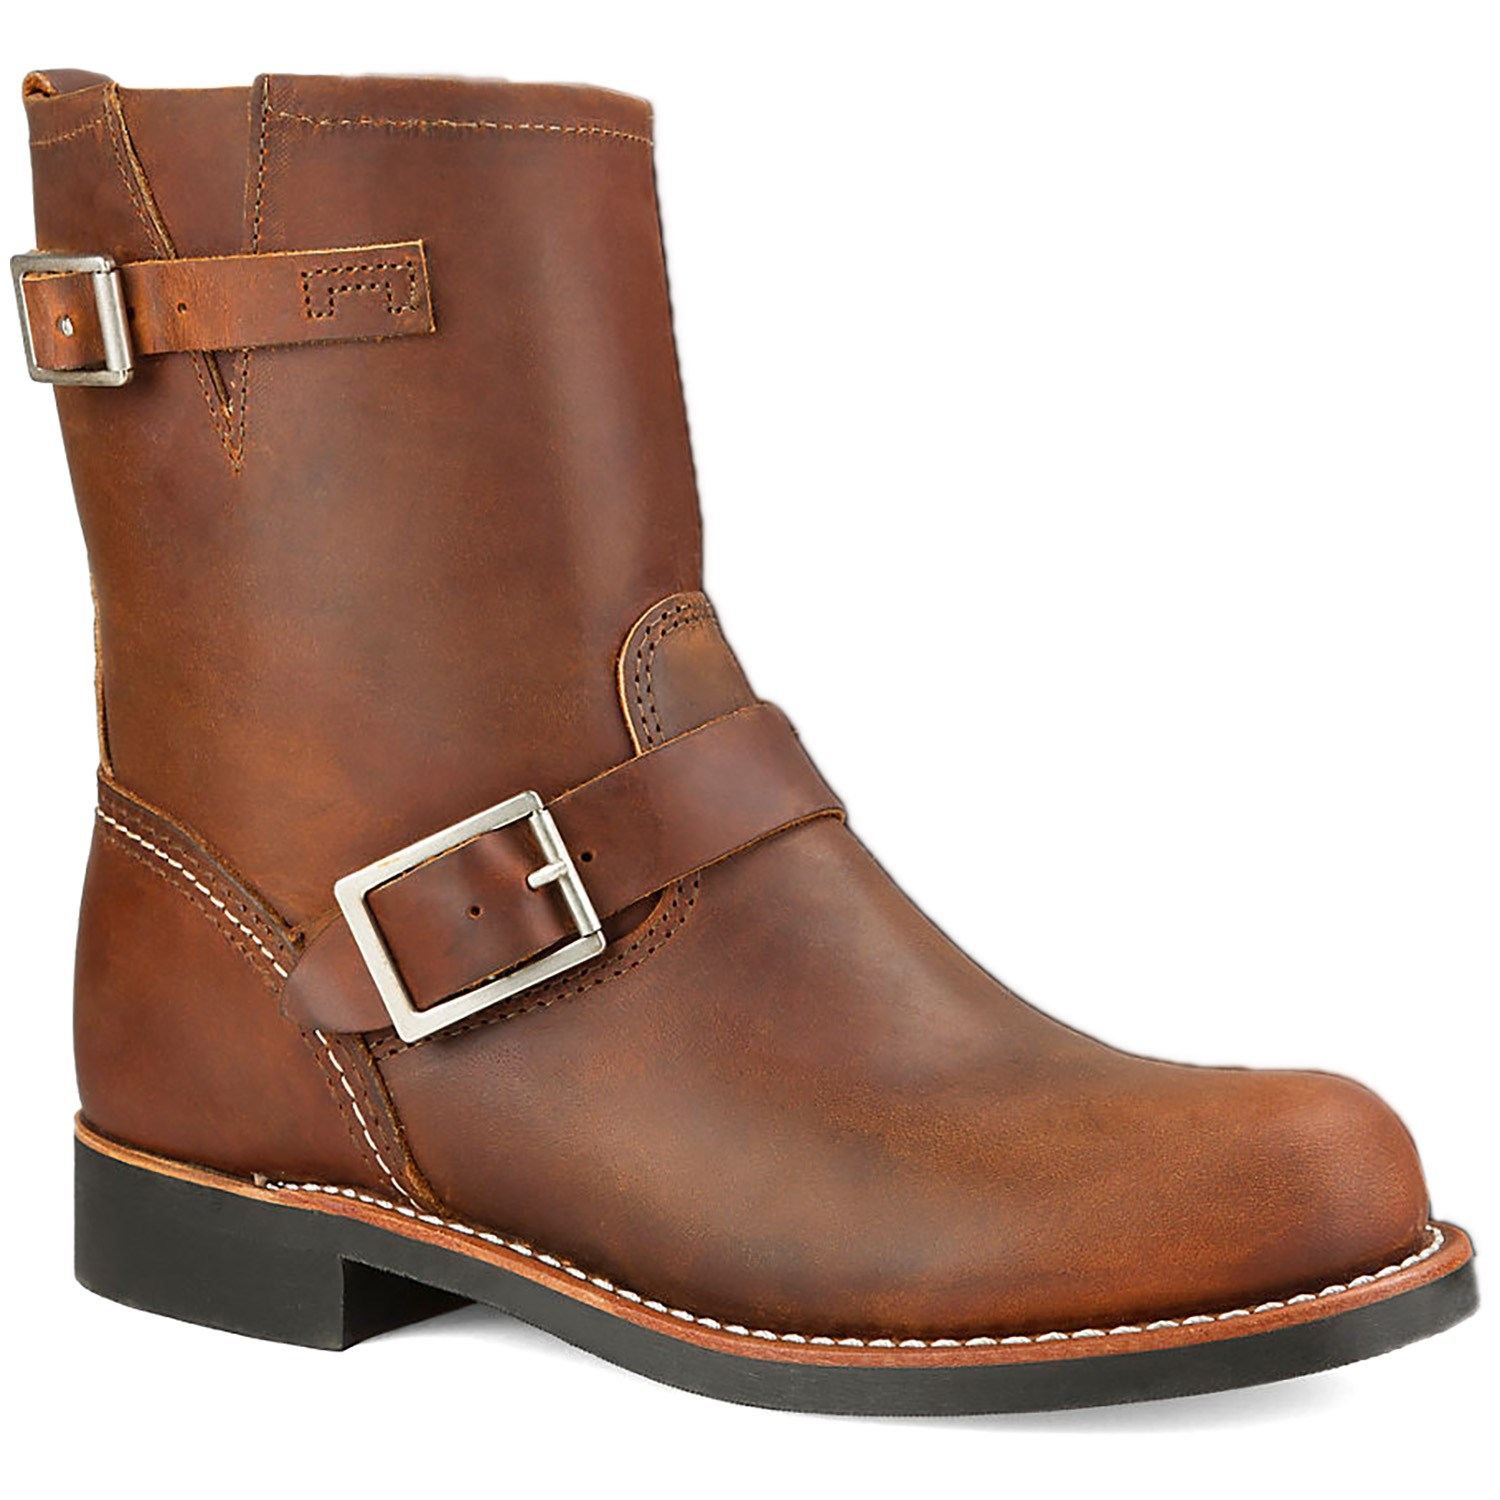 Red Wing Short Engineer Boots - Women's